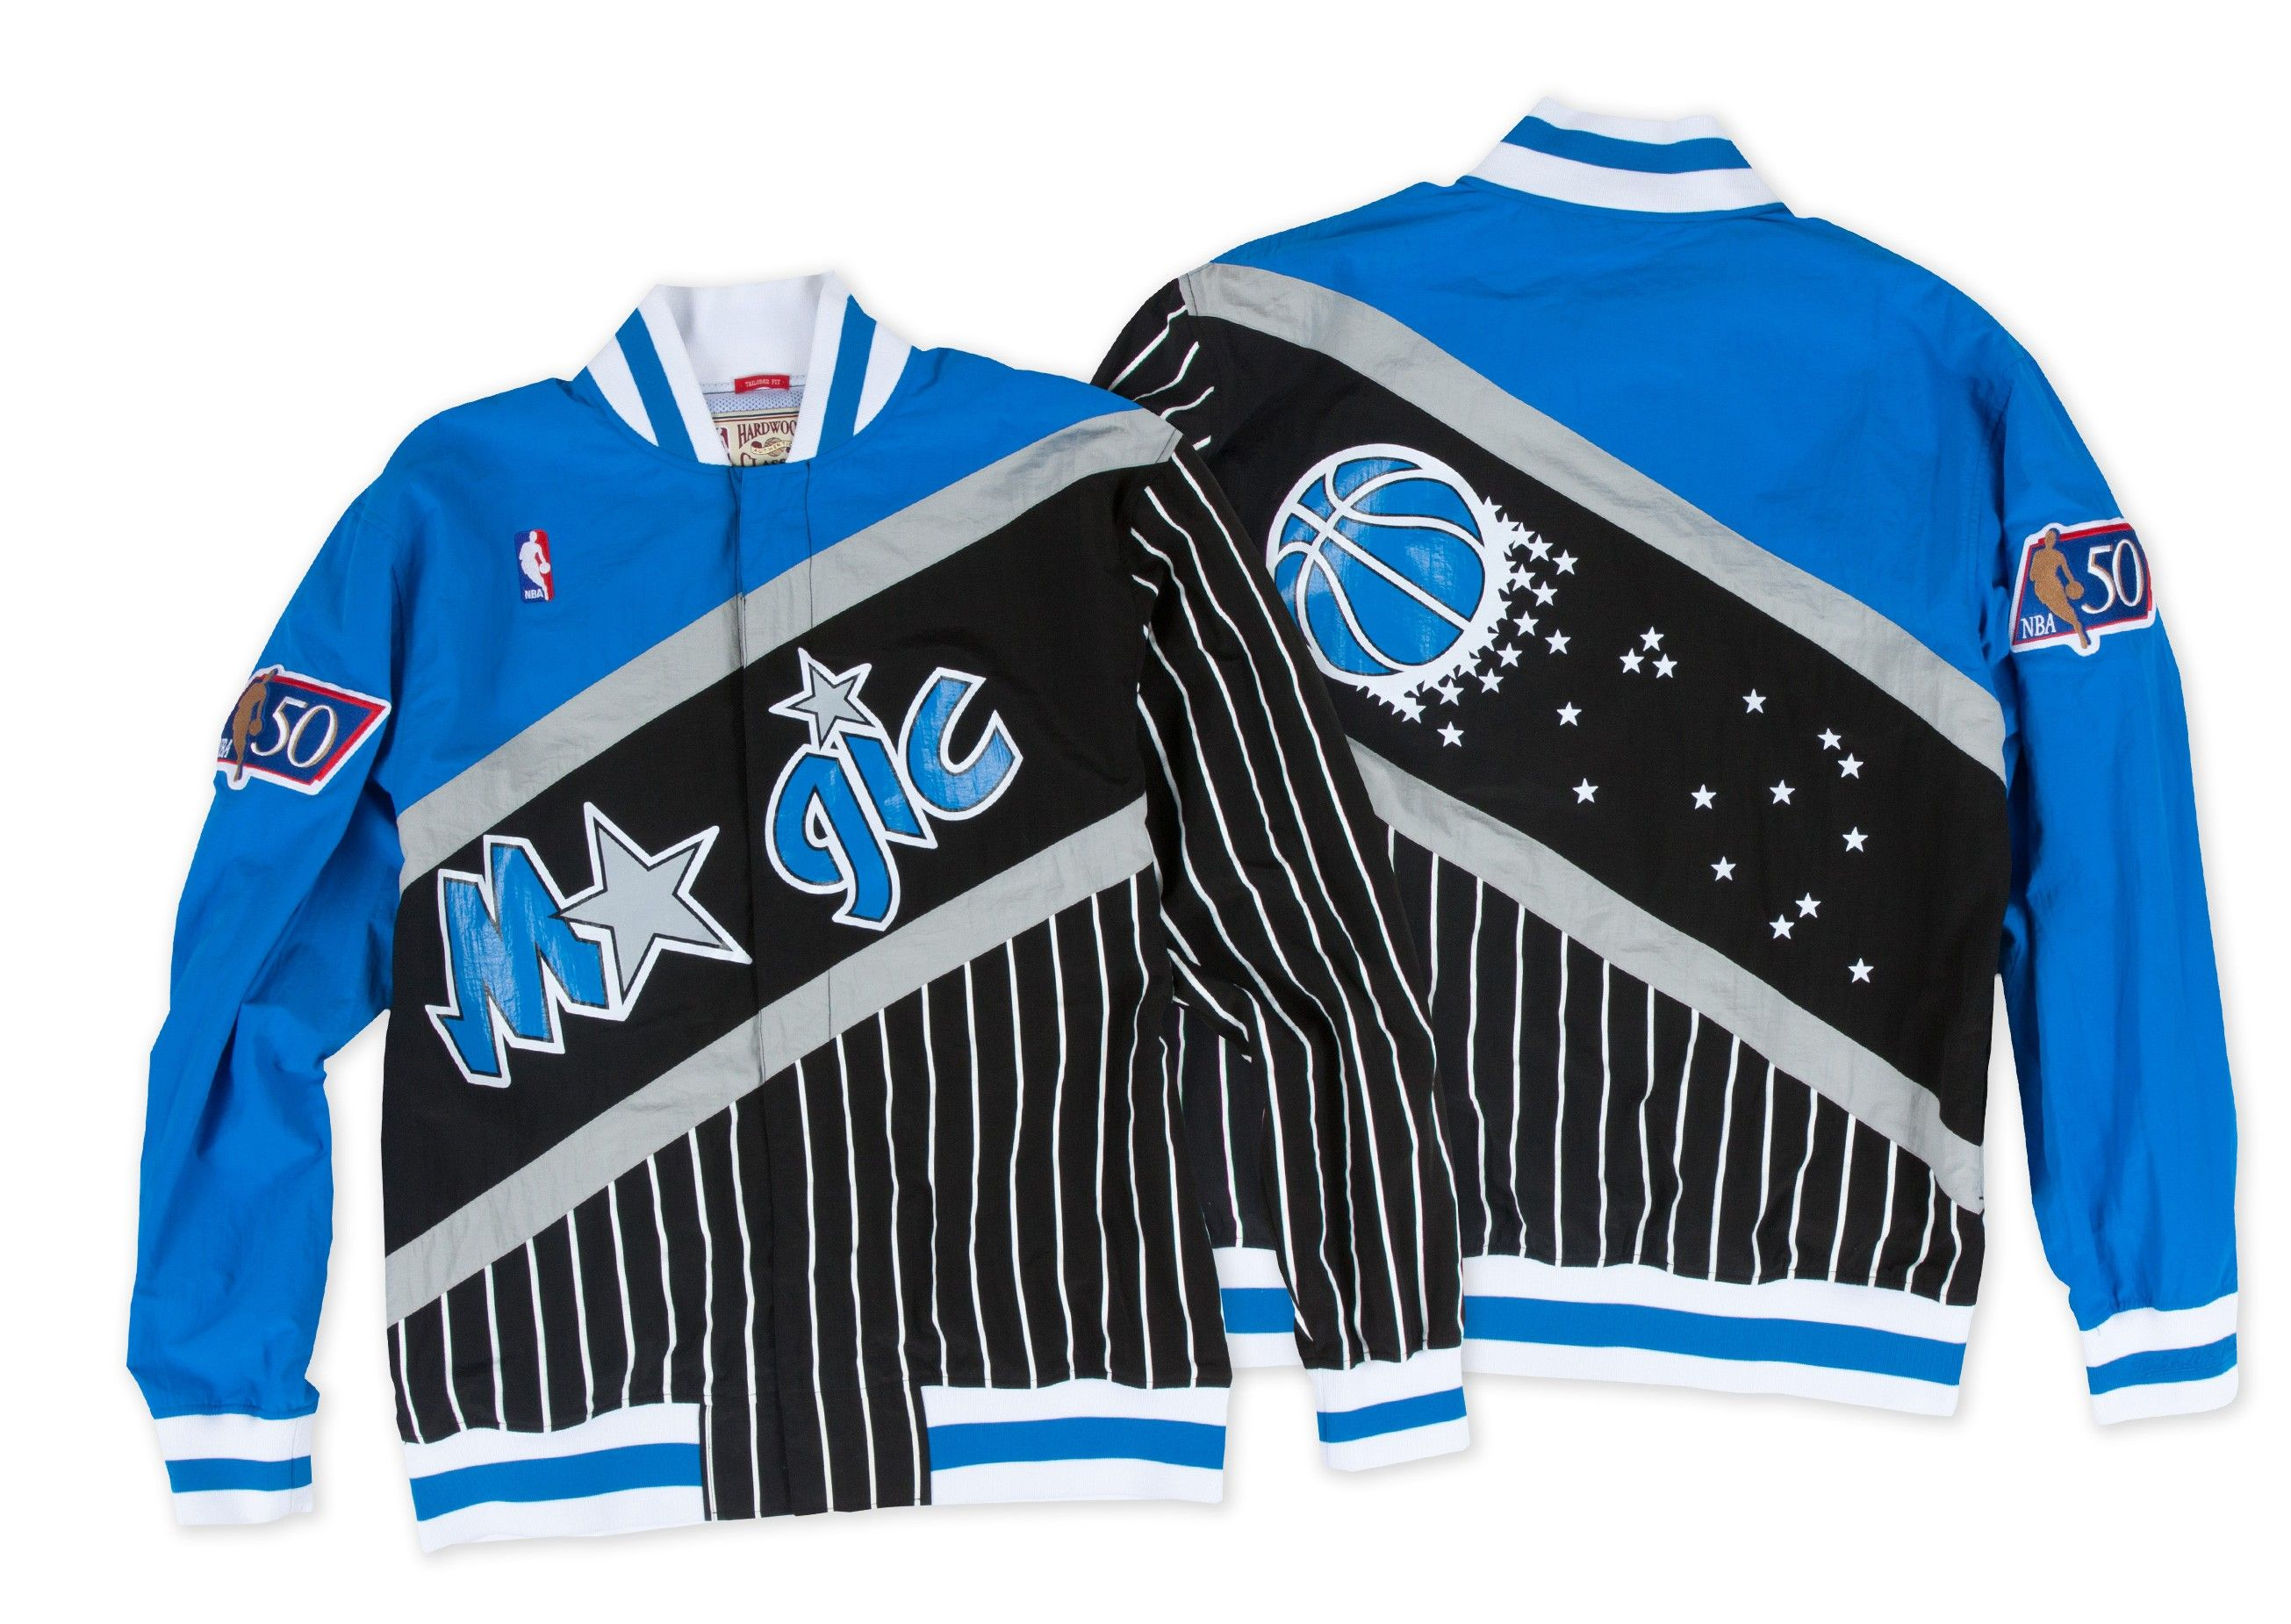 be67955f828 1996-97 Authentic Warm Up Jacket Orlando Magic - Shop Mitchell   Ness NBA  Outerwear and Jackets